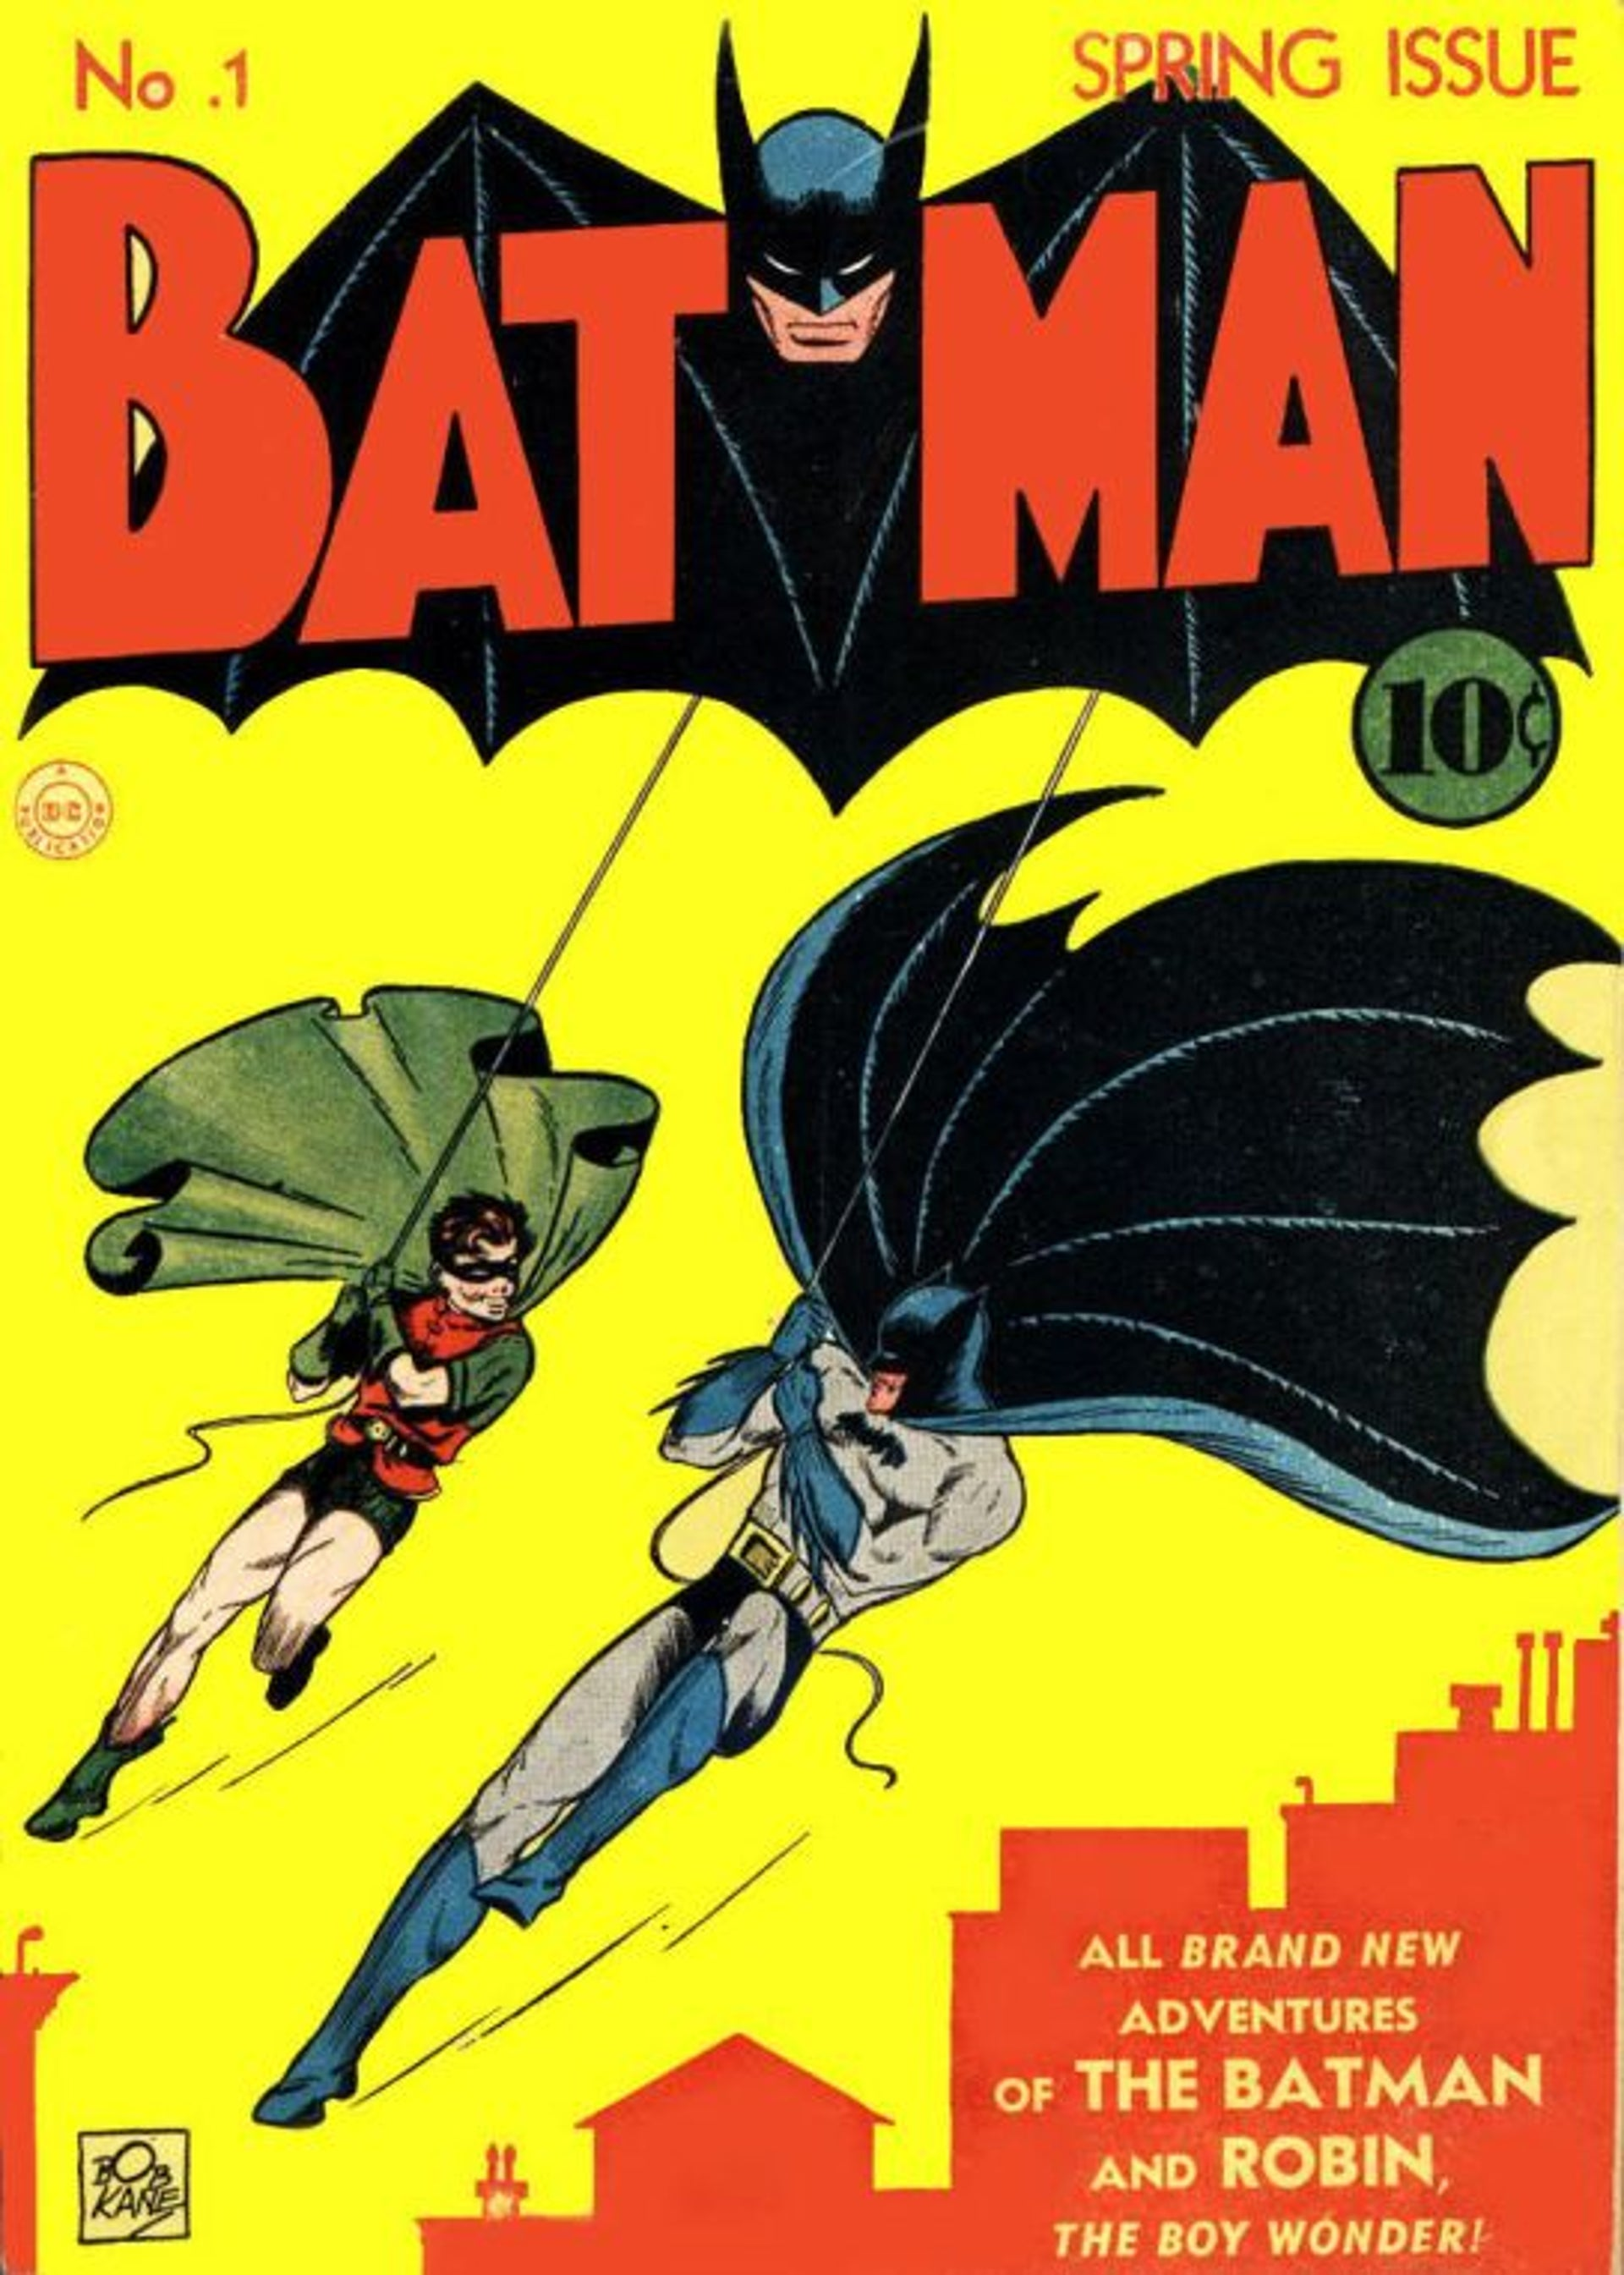 The first Batman cover from 1940 by Bill Finger and Bob Kane (Robert Kahn)